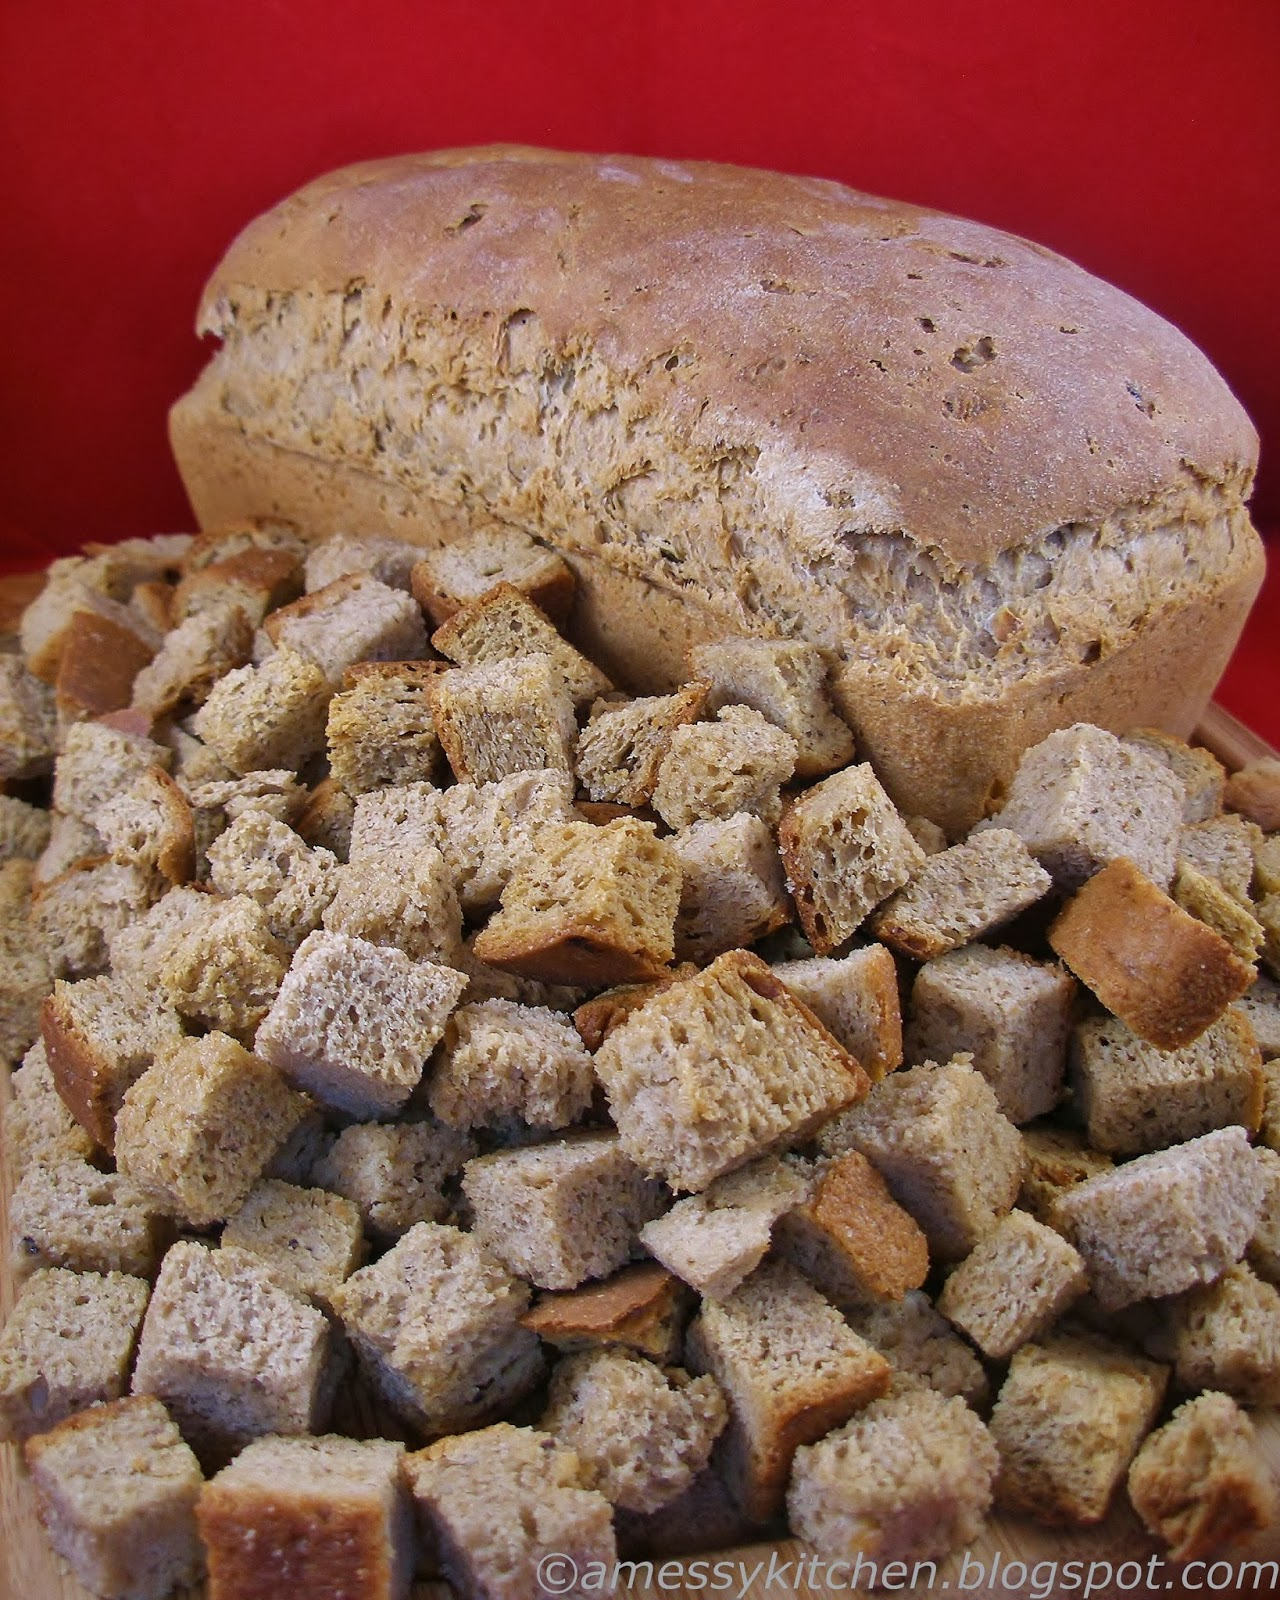 Messy Kitchen Baking: A Messy Kitchen: Stuffing Bread Croutons